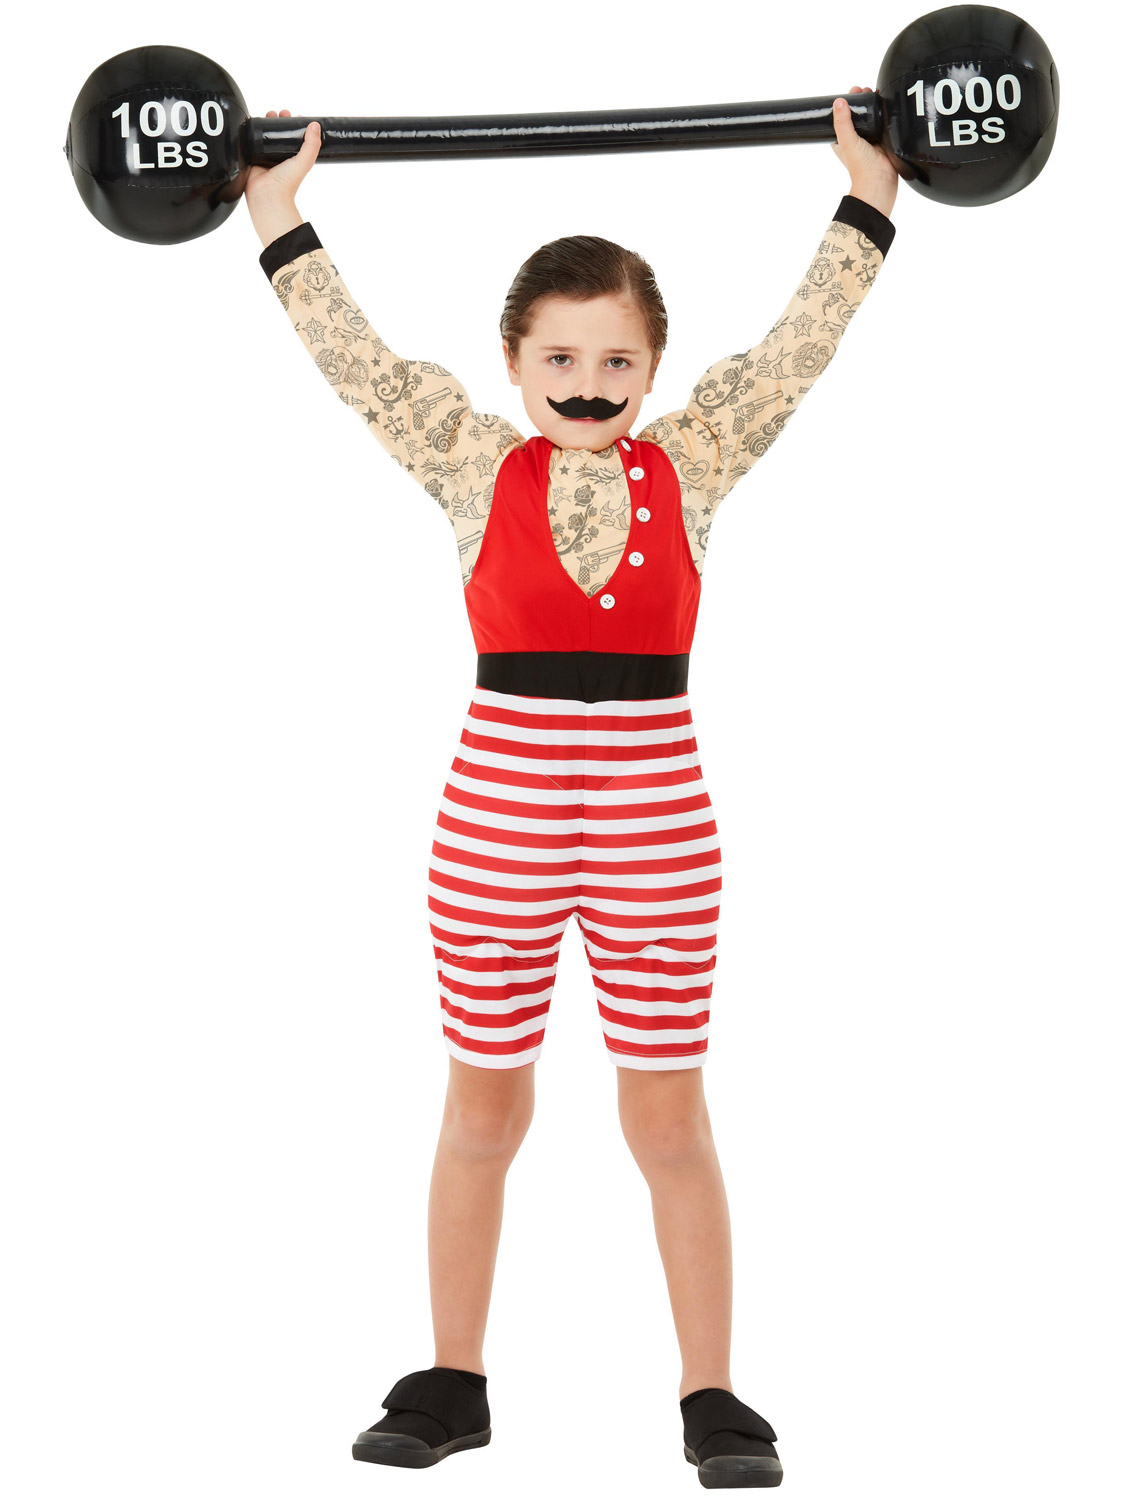 Boys-Girls-Ringmaster-Strongman-Costume-The-Greatest-Showman-Circus-Fancy-Dress thumbnail 6